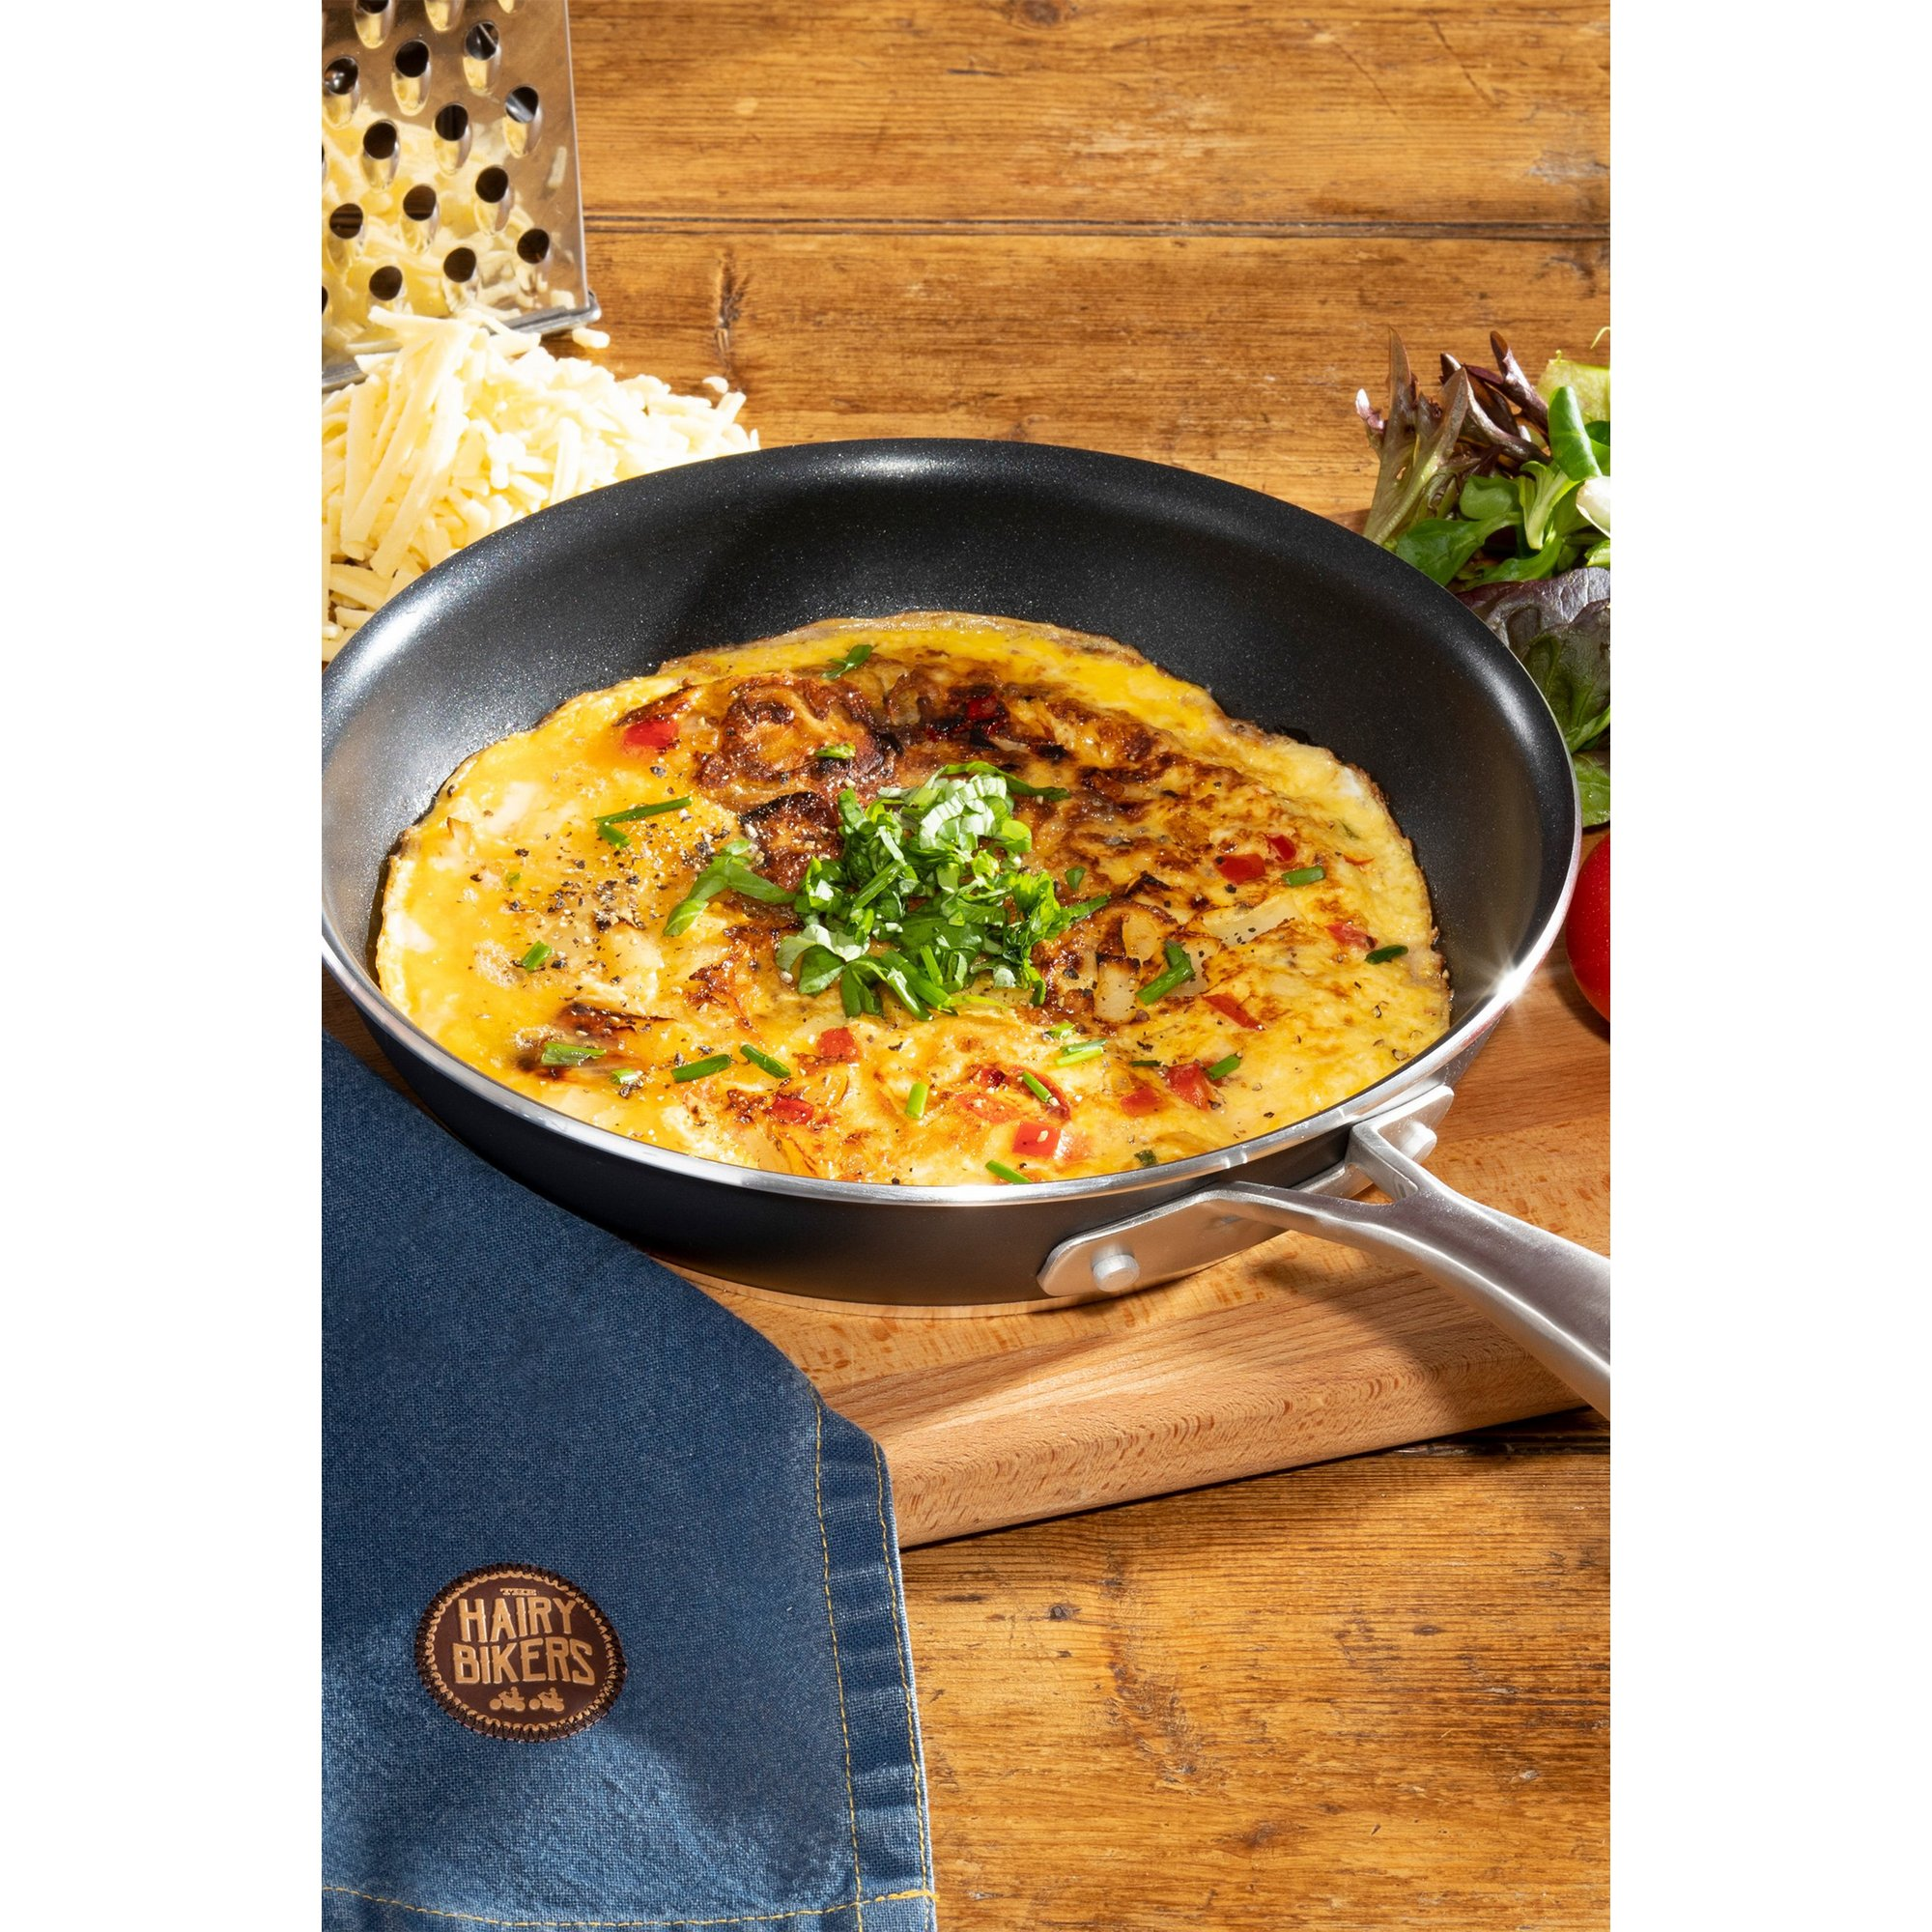 Image of Hairy Bikers 24cm Forged Fry Pan